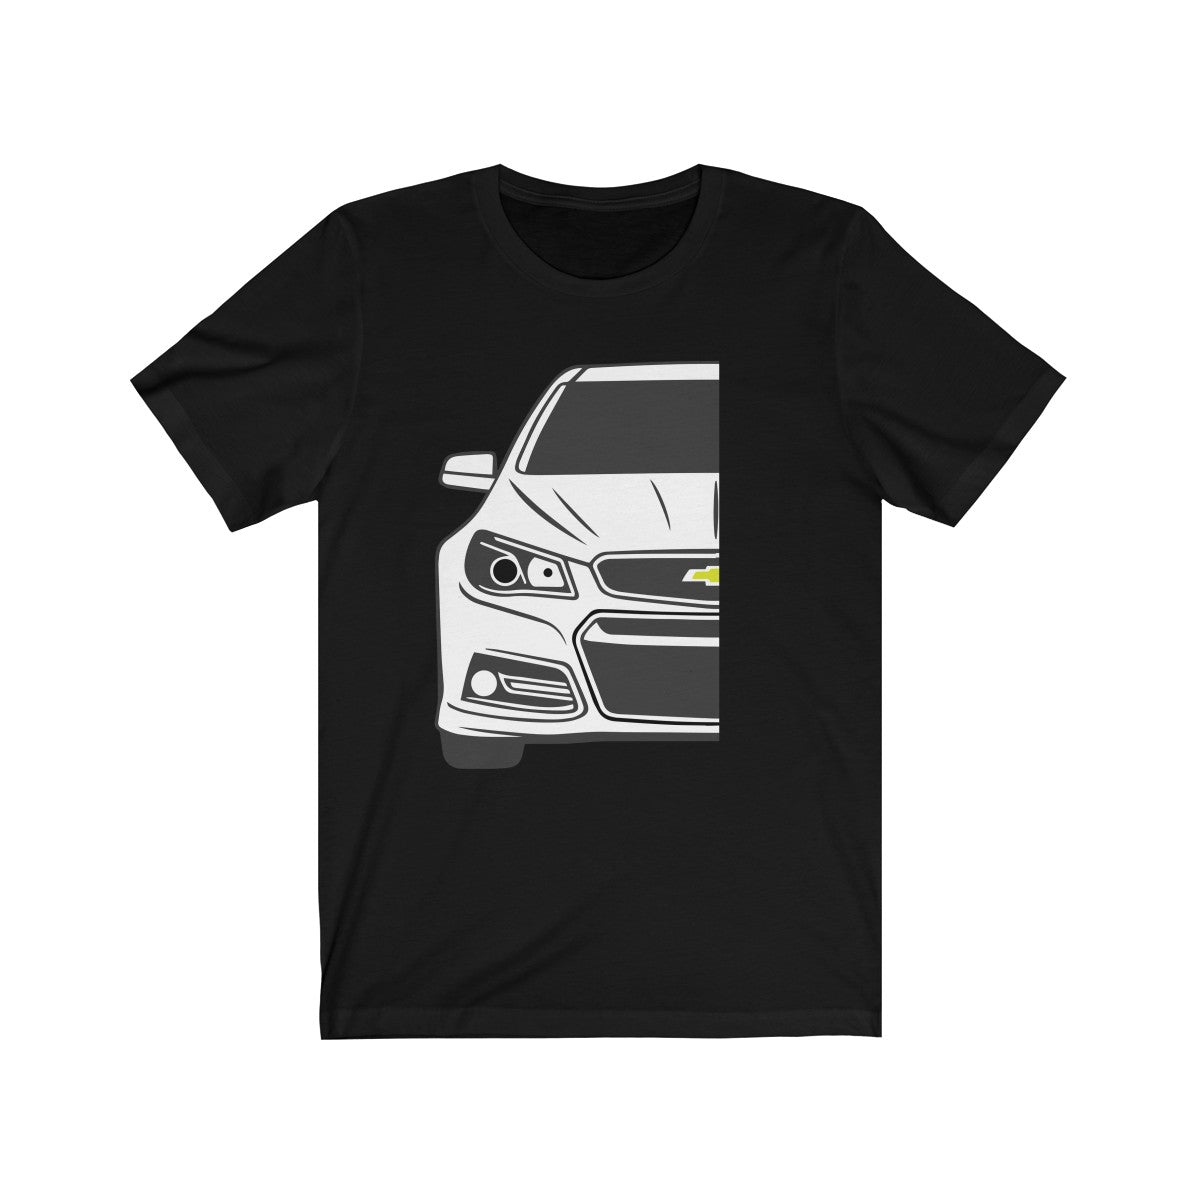 SS Outline, T-Shirt - MotorClub Clothes